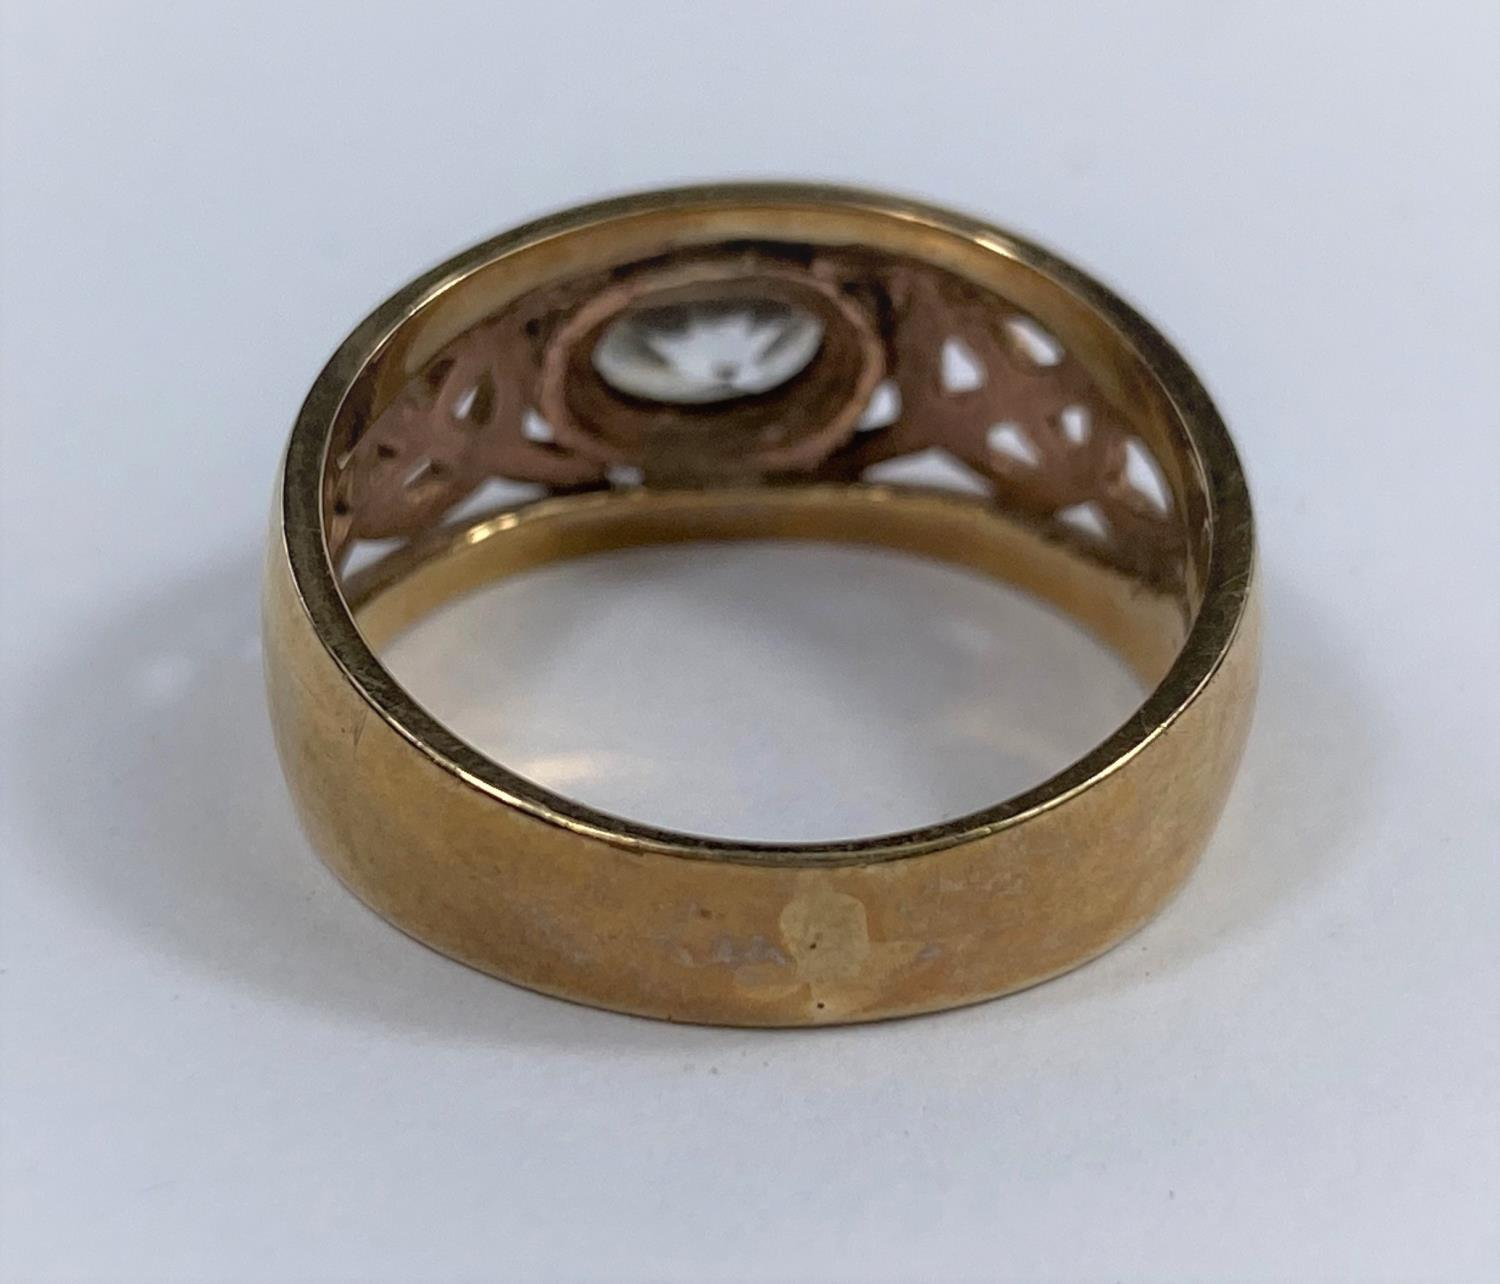 A 9 carat hallmarked gold period style ring set clear oval stone, the split shank with pierced - Image 4 of 5